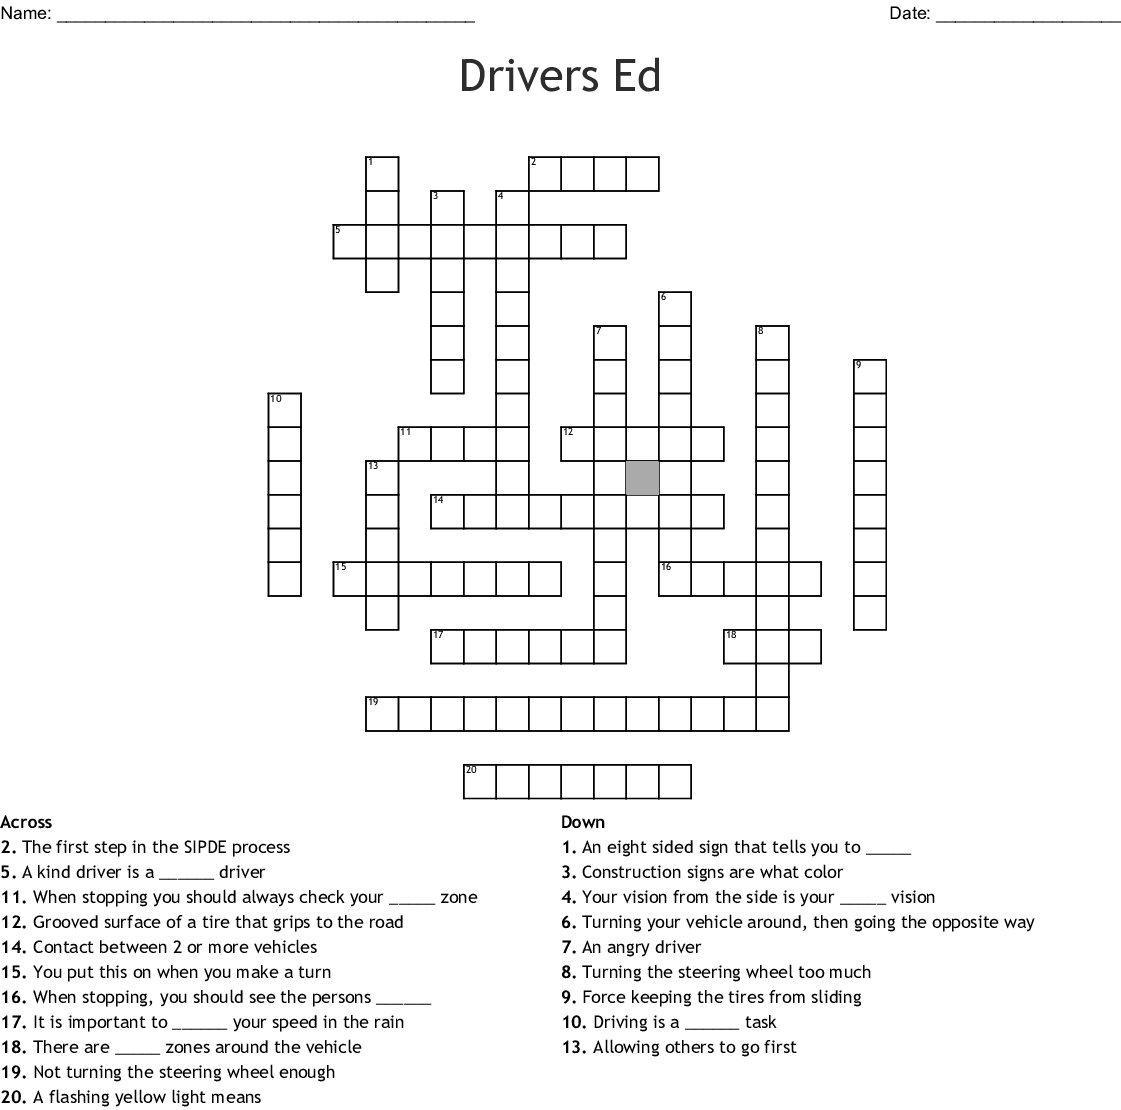 Drivers Ed Crossword